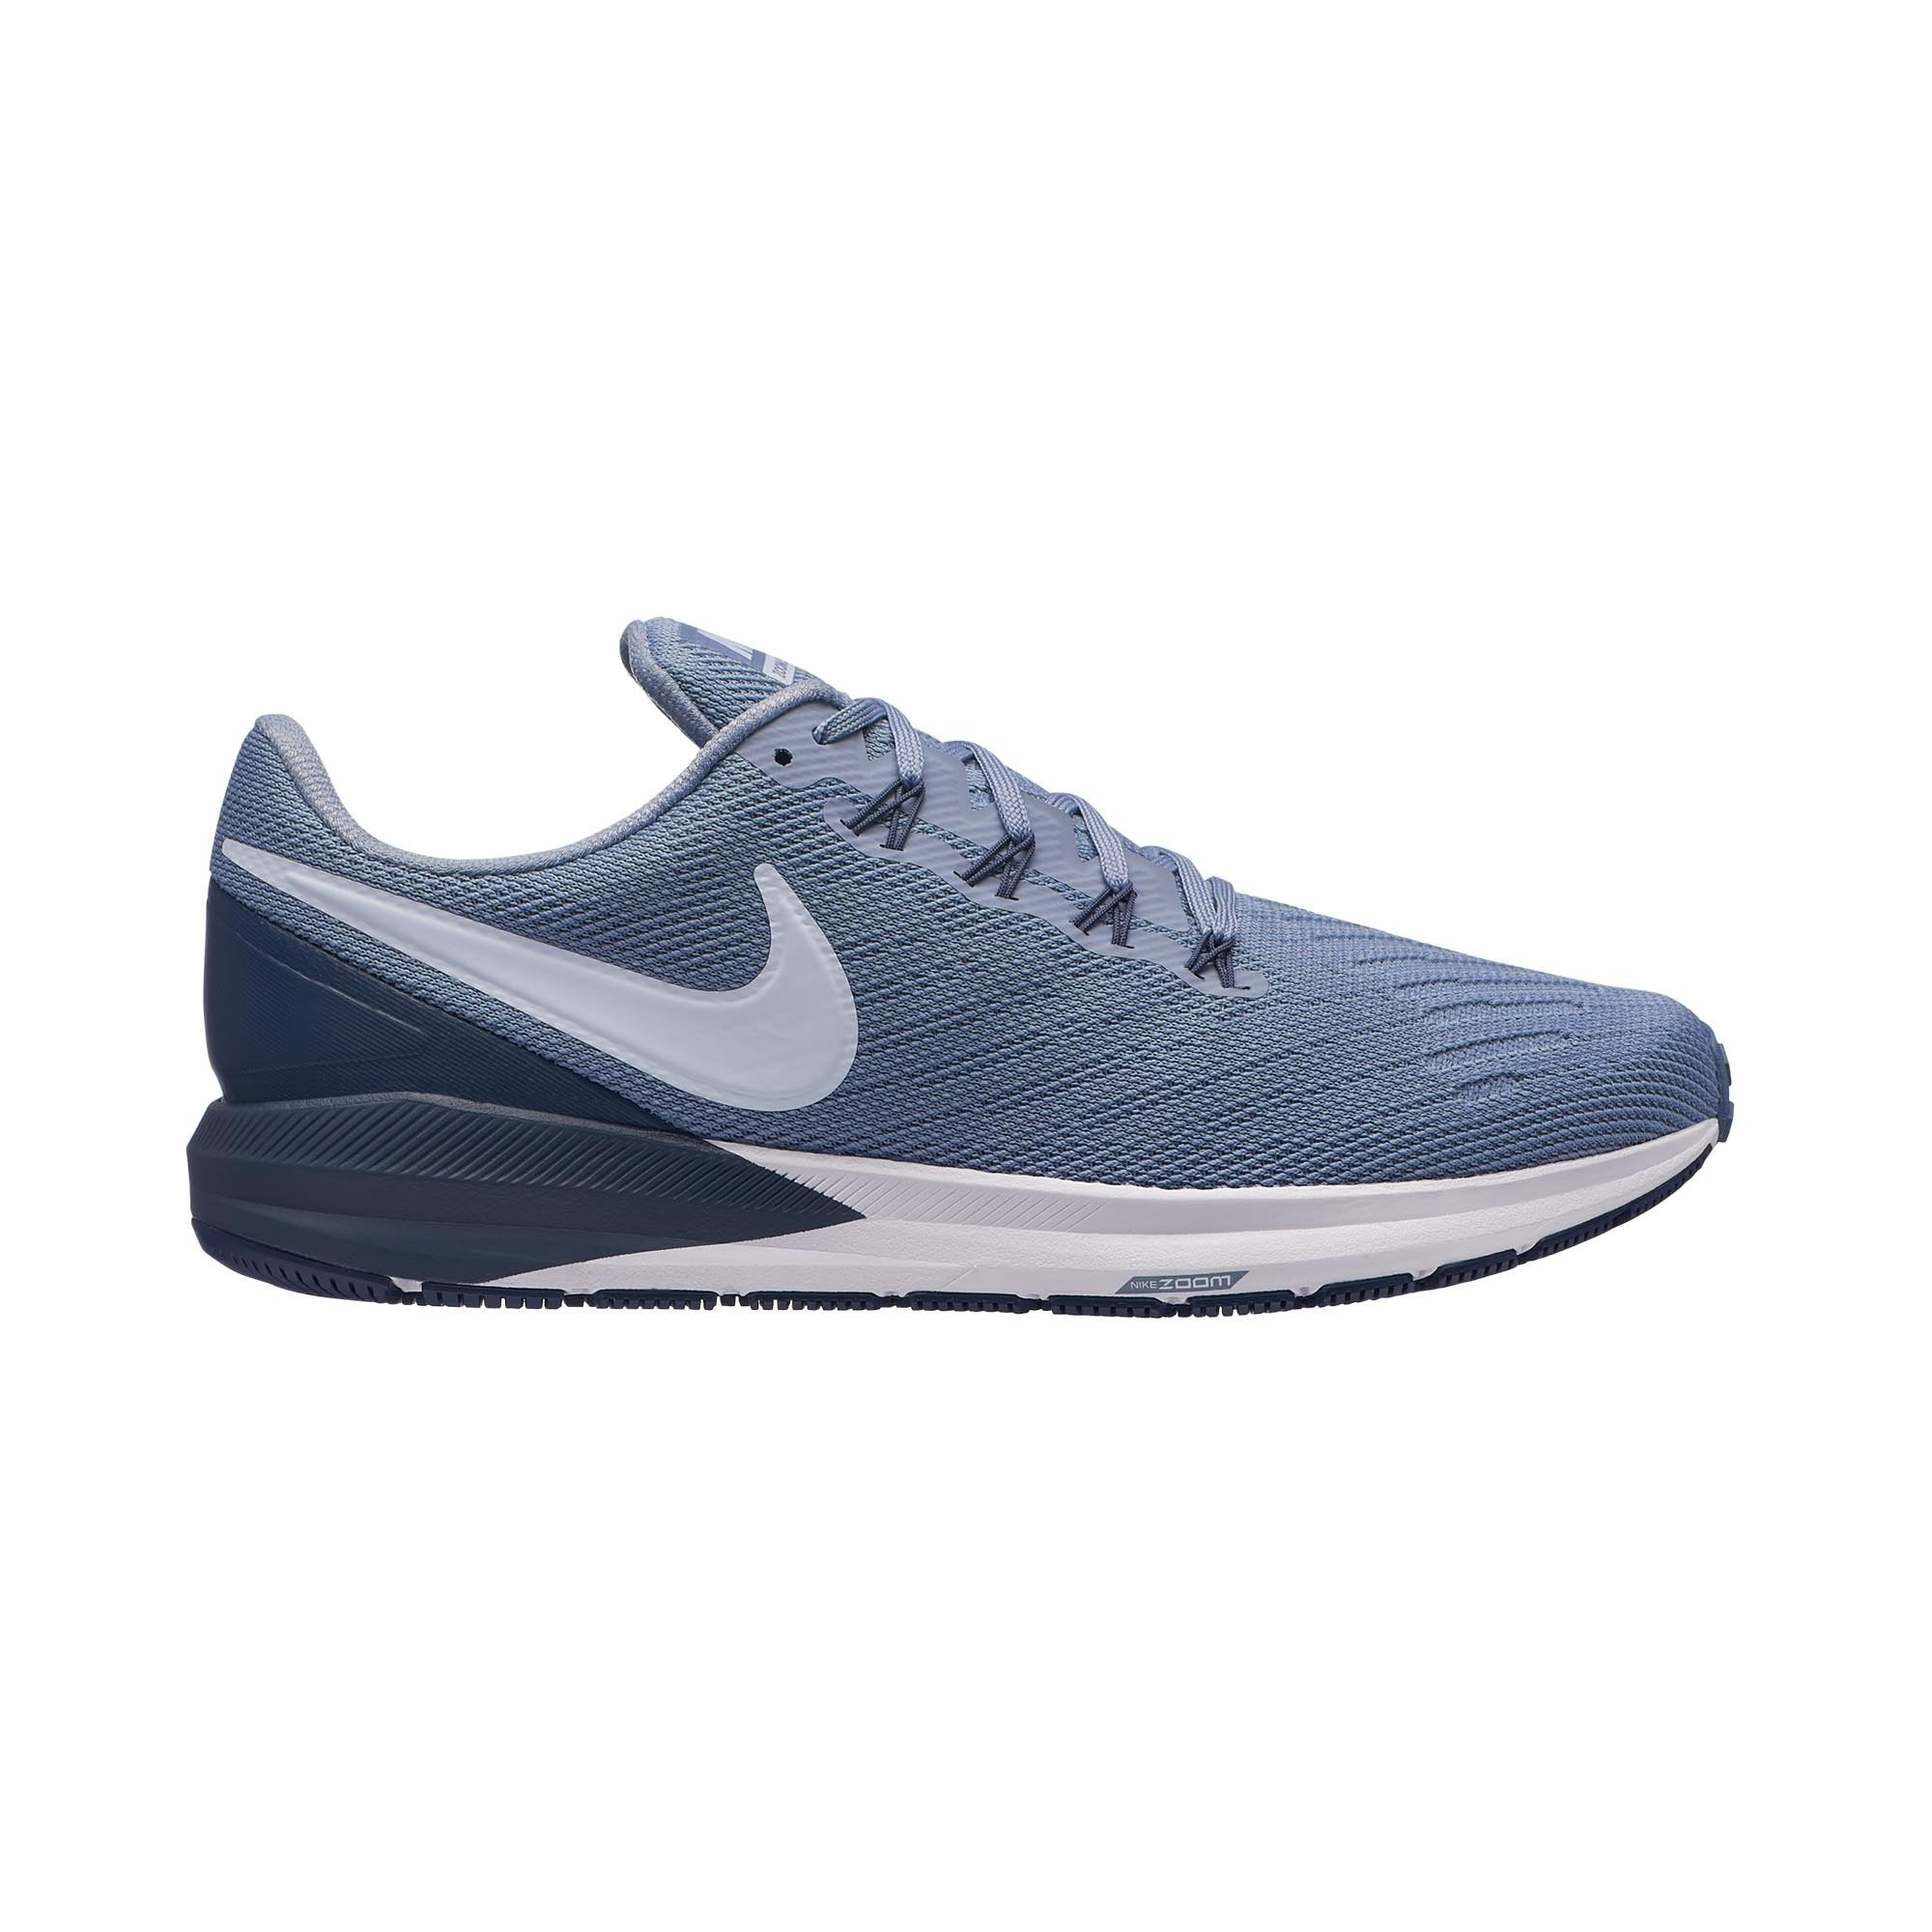 huge discount 71f4e 7a1db Buy NIKE Men Air Zoom Structure 22 Running Shoes, Ashen Slate Football  Grey Thunder Blue Online in Singapore   Royal Sporting House